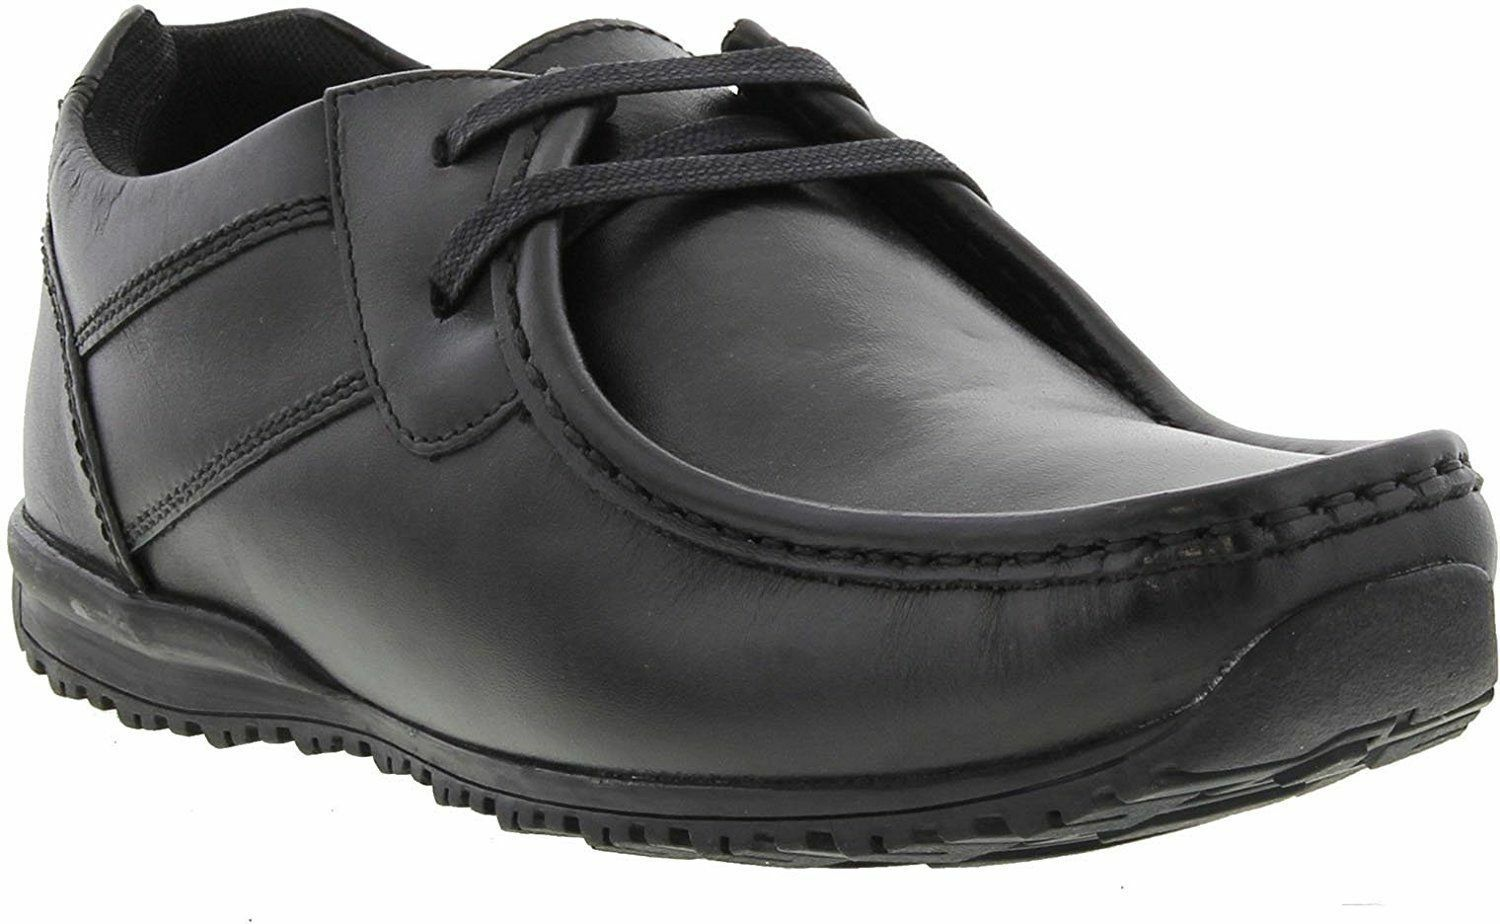 Hombre IKON LEATHER FASHION SMART Zapatos STYLE TIDE - Negro Negro Negro 5ac4d6